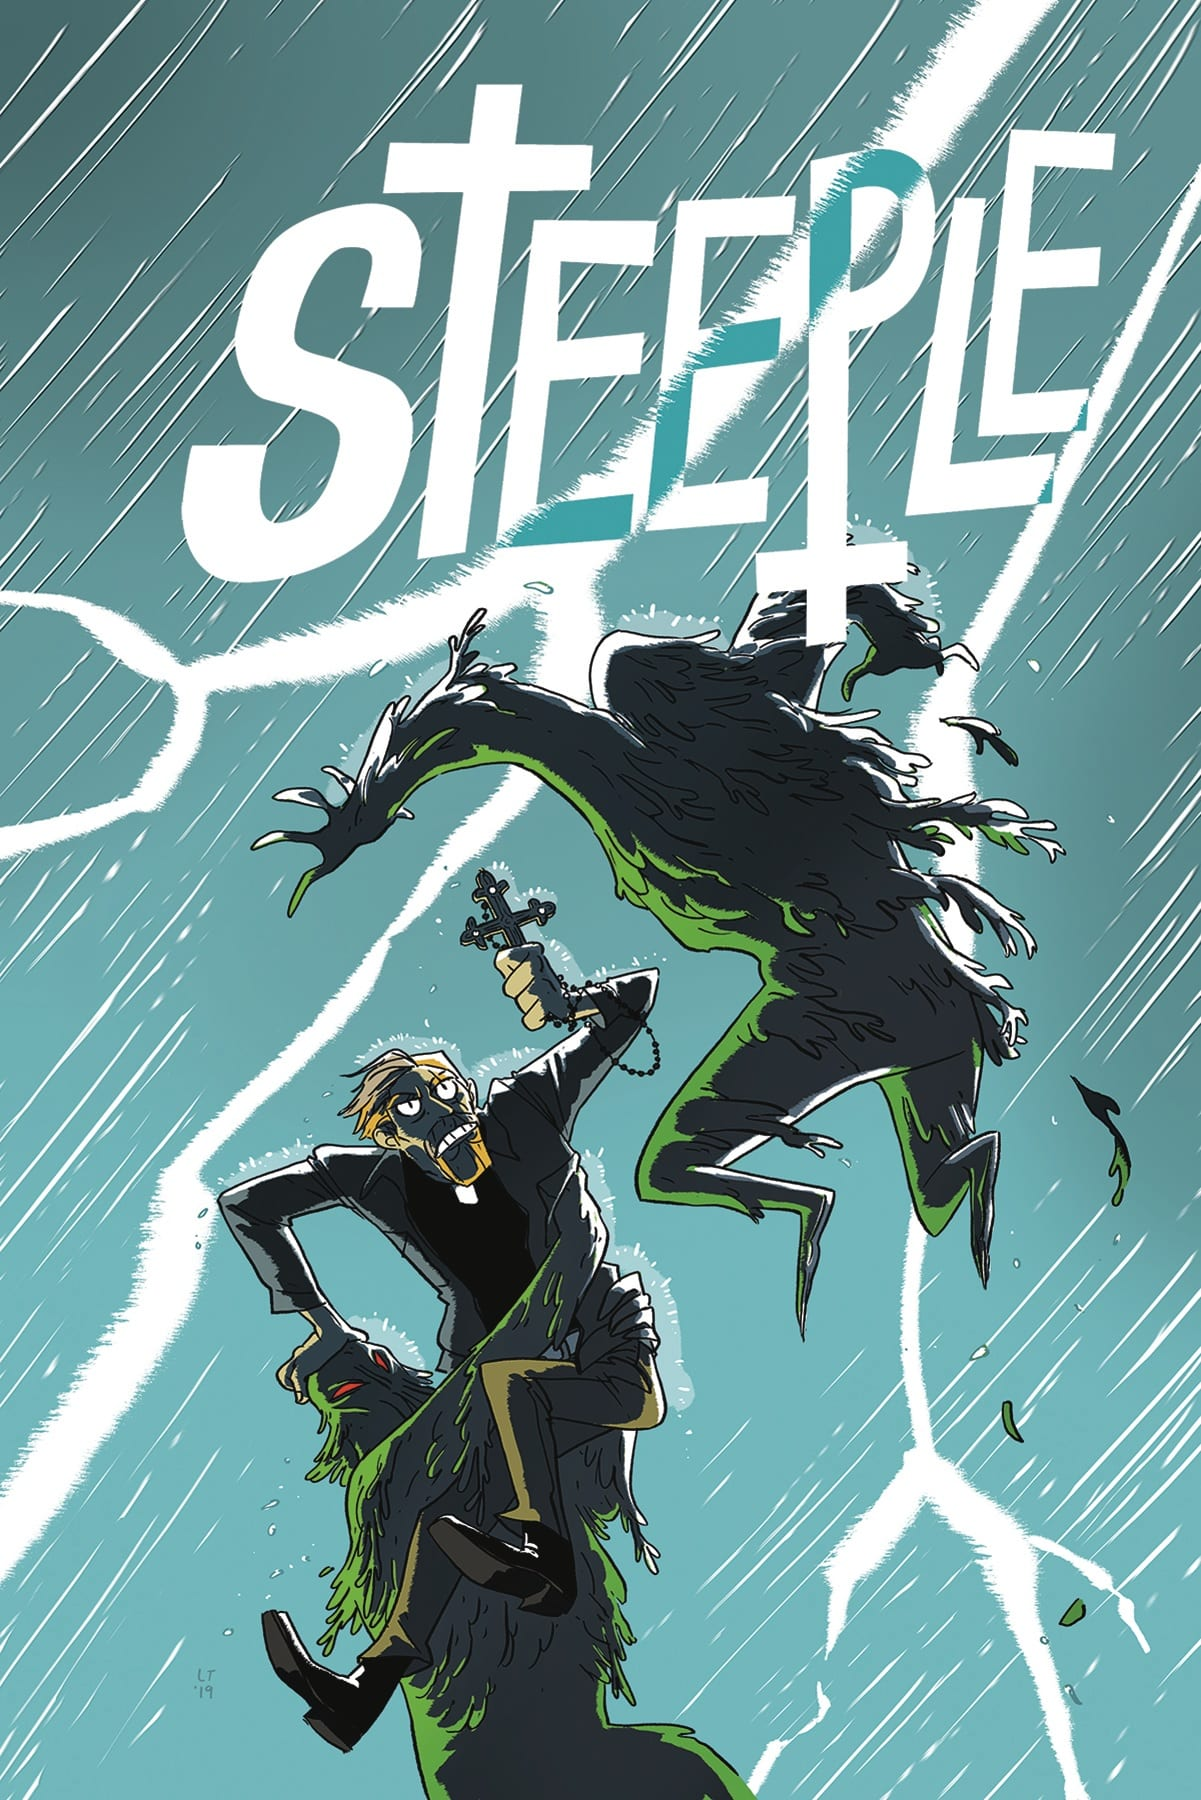 STEEPLE #2 - There's More Than One Way to Fight Evil 2